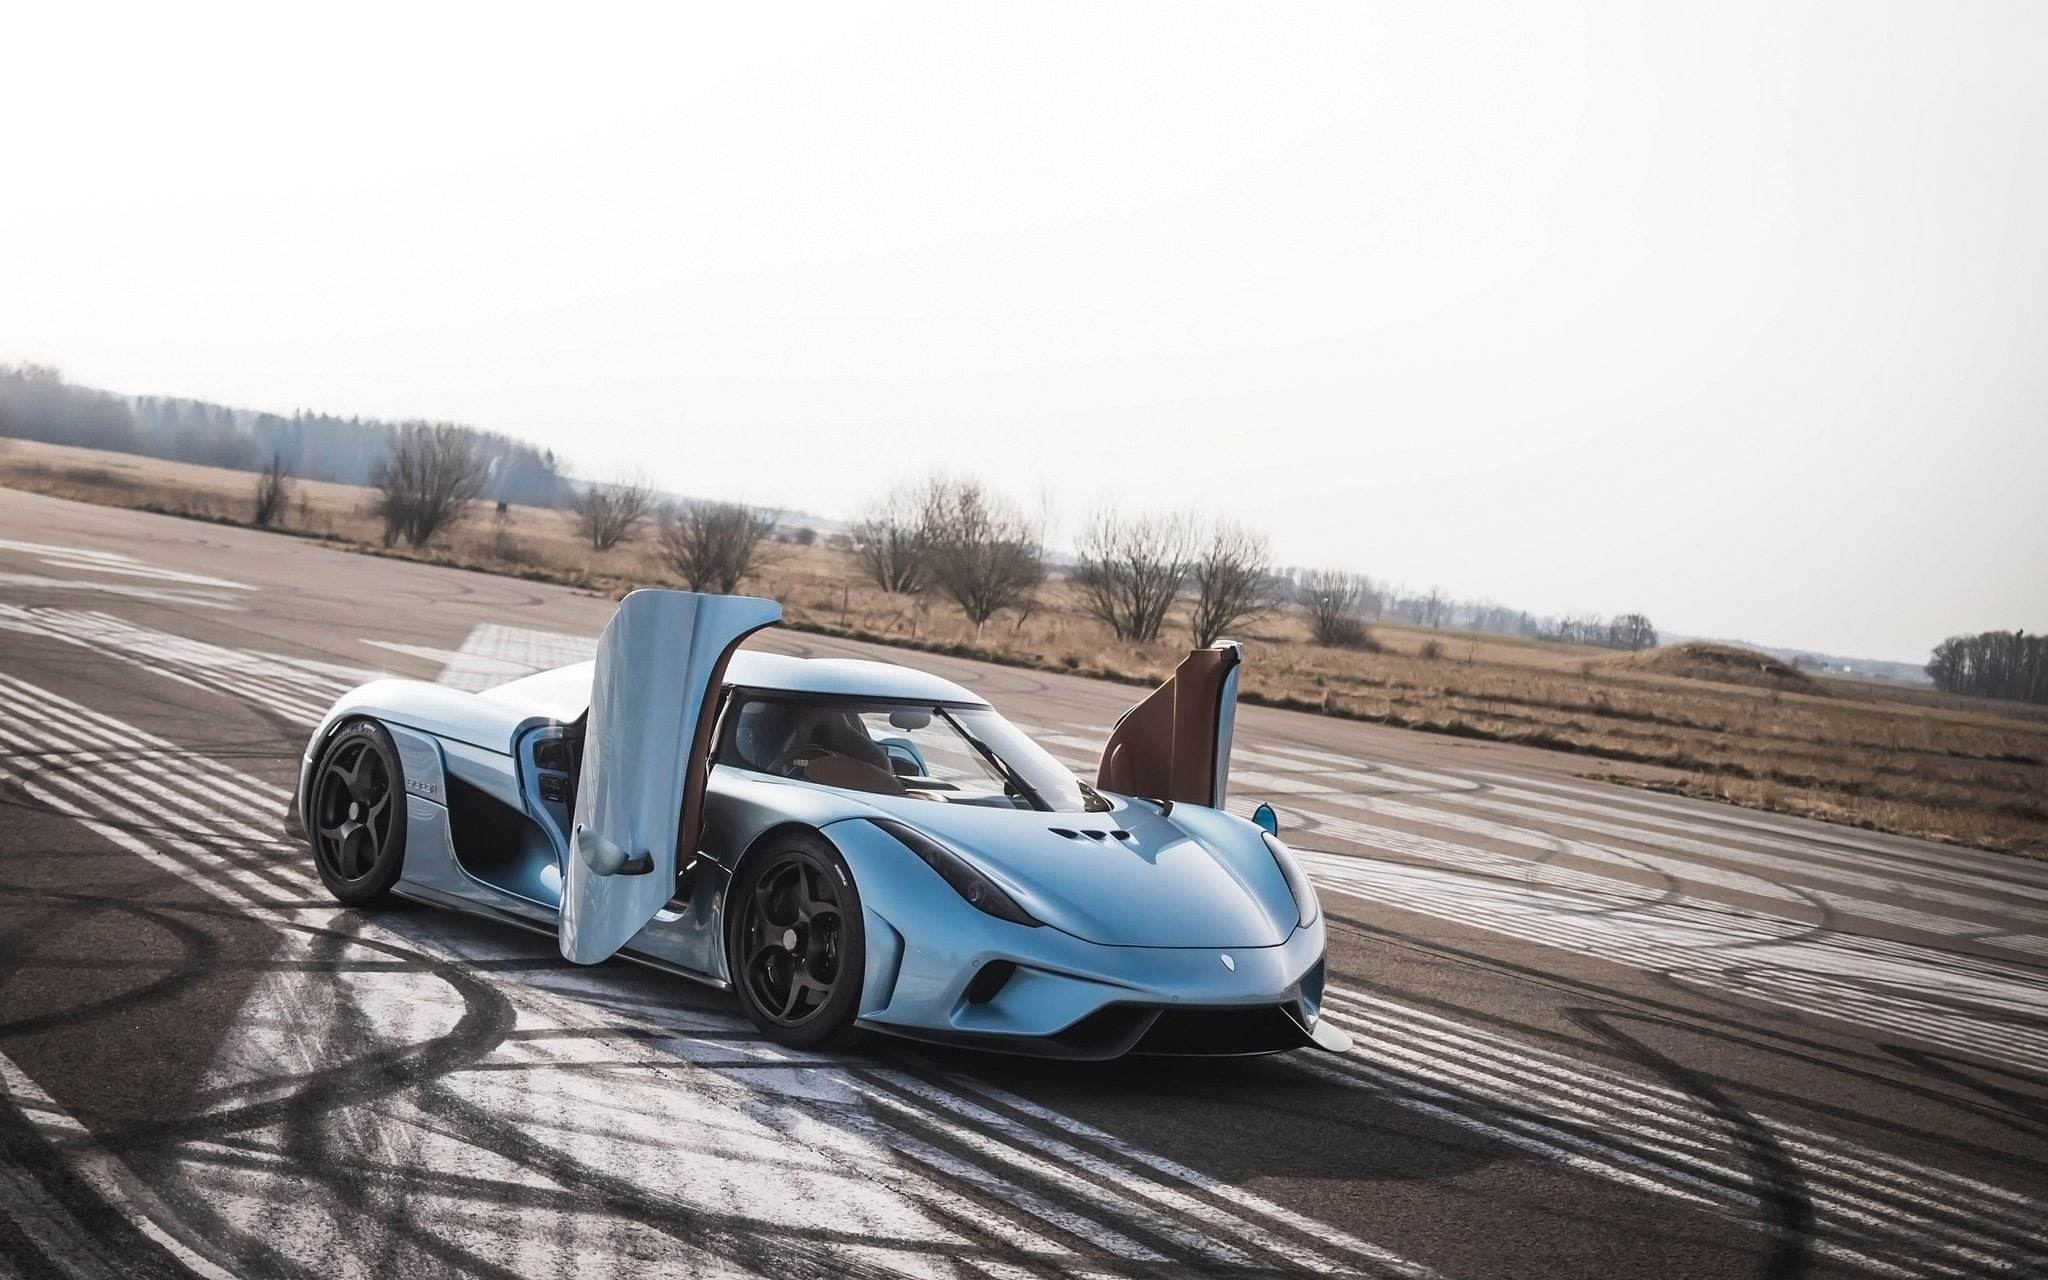 Koenigsegg Regera Wallpapers and Background Images   stmednet 2048x1280